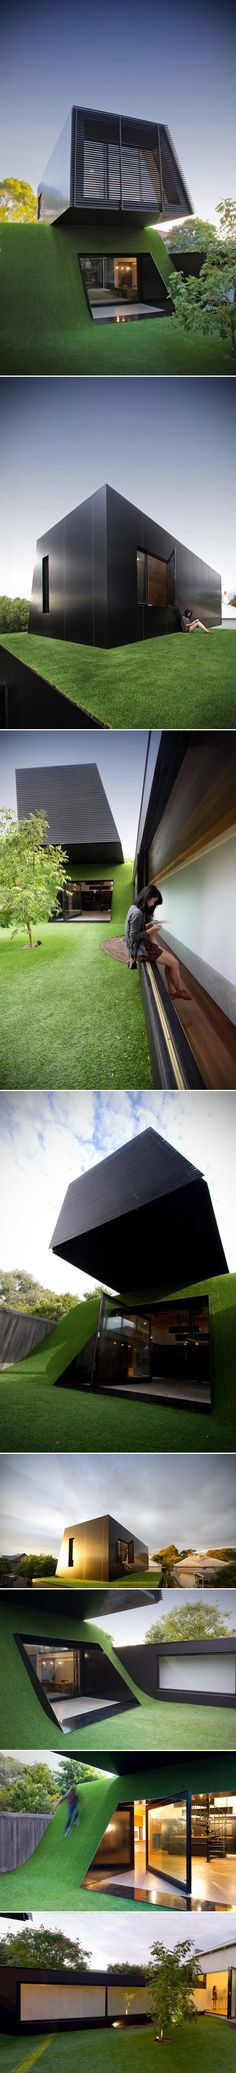 Hill House Melbourne by Andrew Maynard The synthetic grass is kinda lame, but I like the house design.